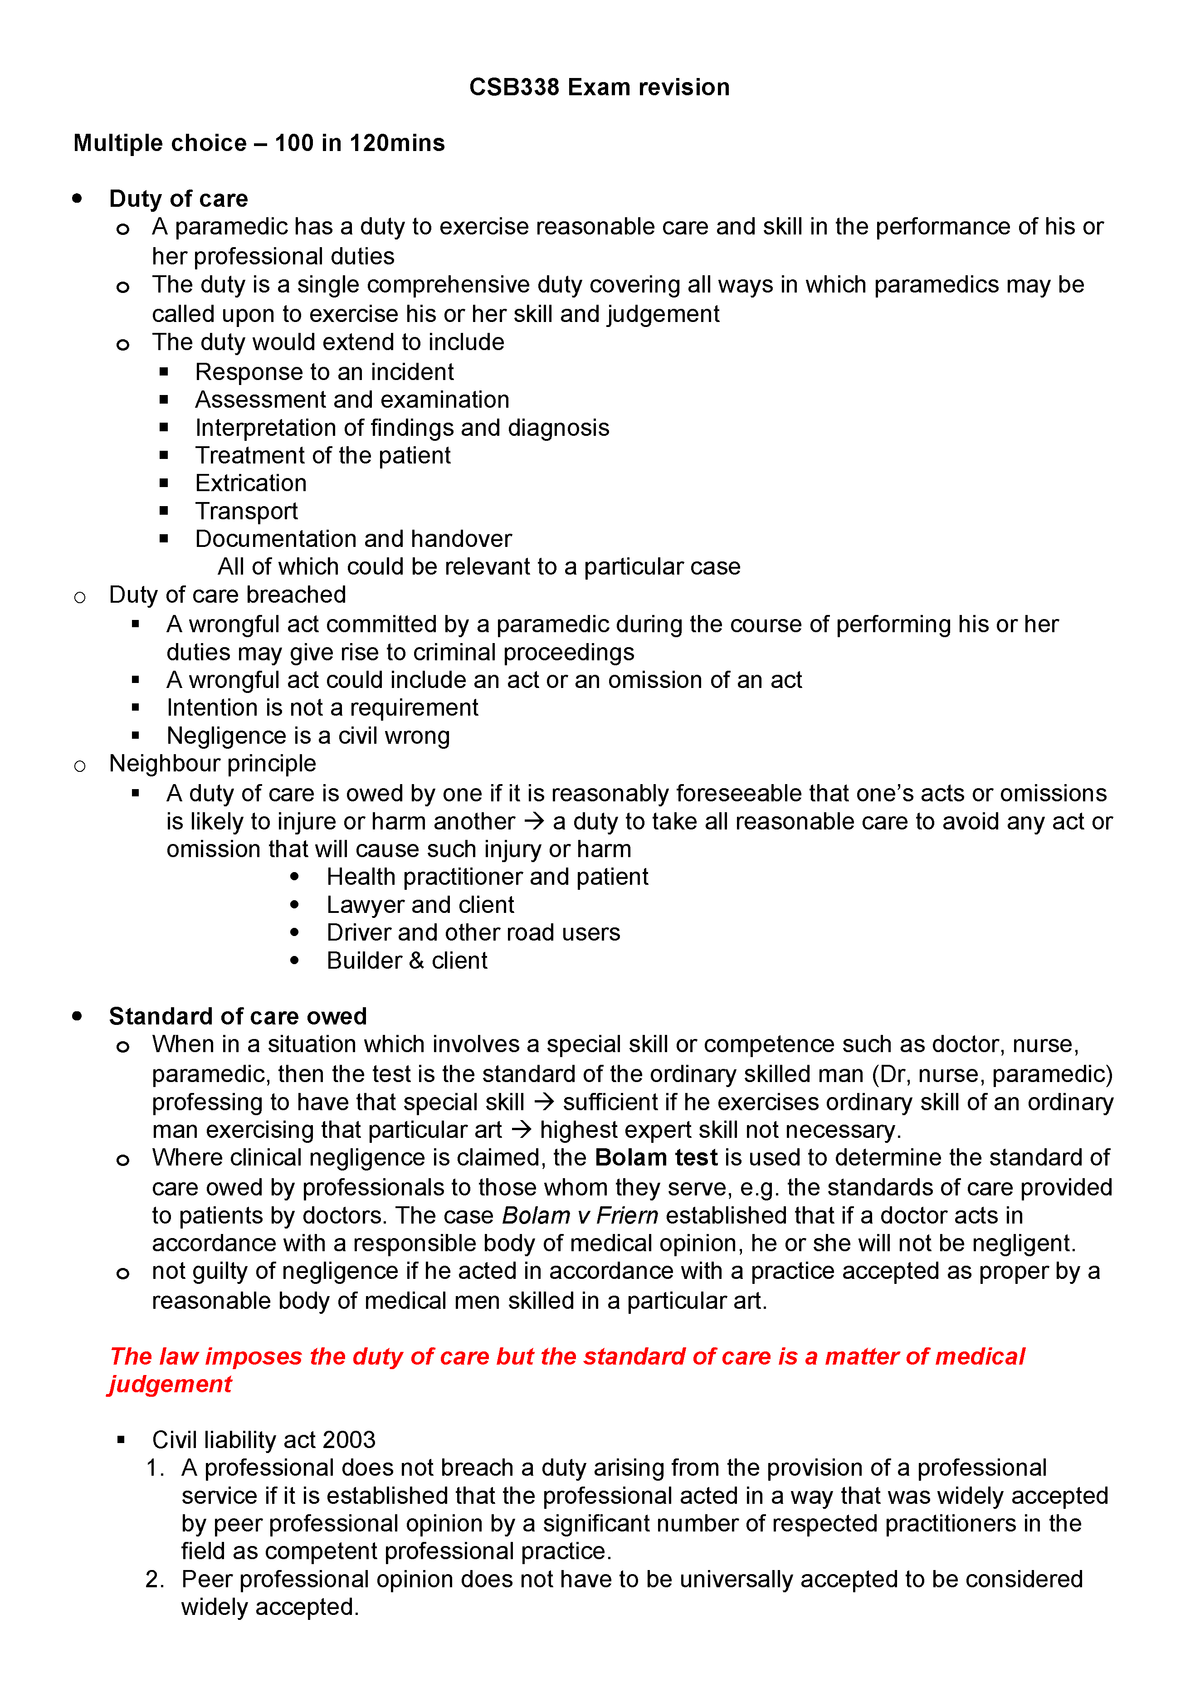 CSB338 Exam revision - Summary Ethics and the Law in Health